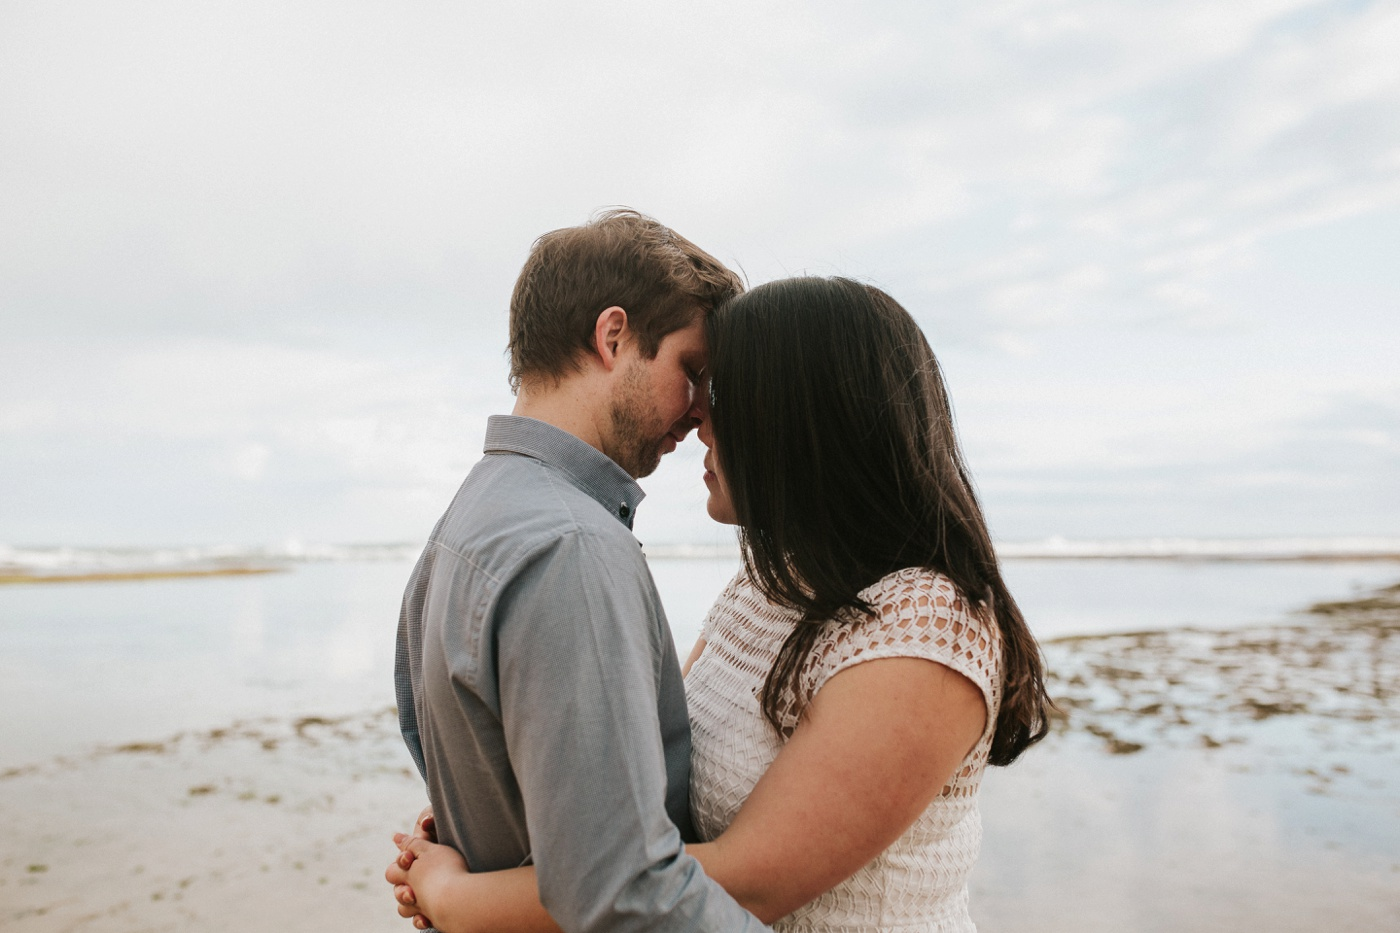 alliedave_mornington-peninsula-back-beach-relaxed-engagement-session_melbourne-candid-wedding-photographer_20